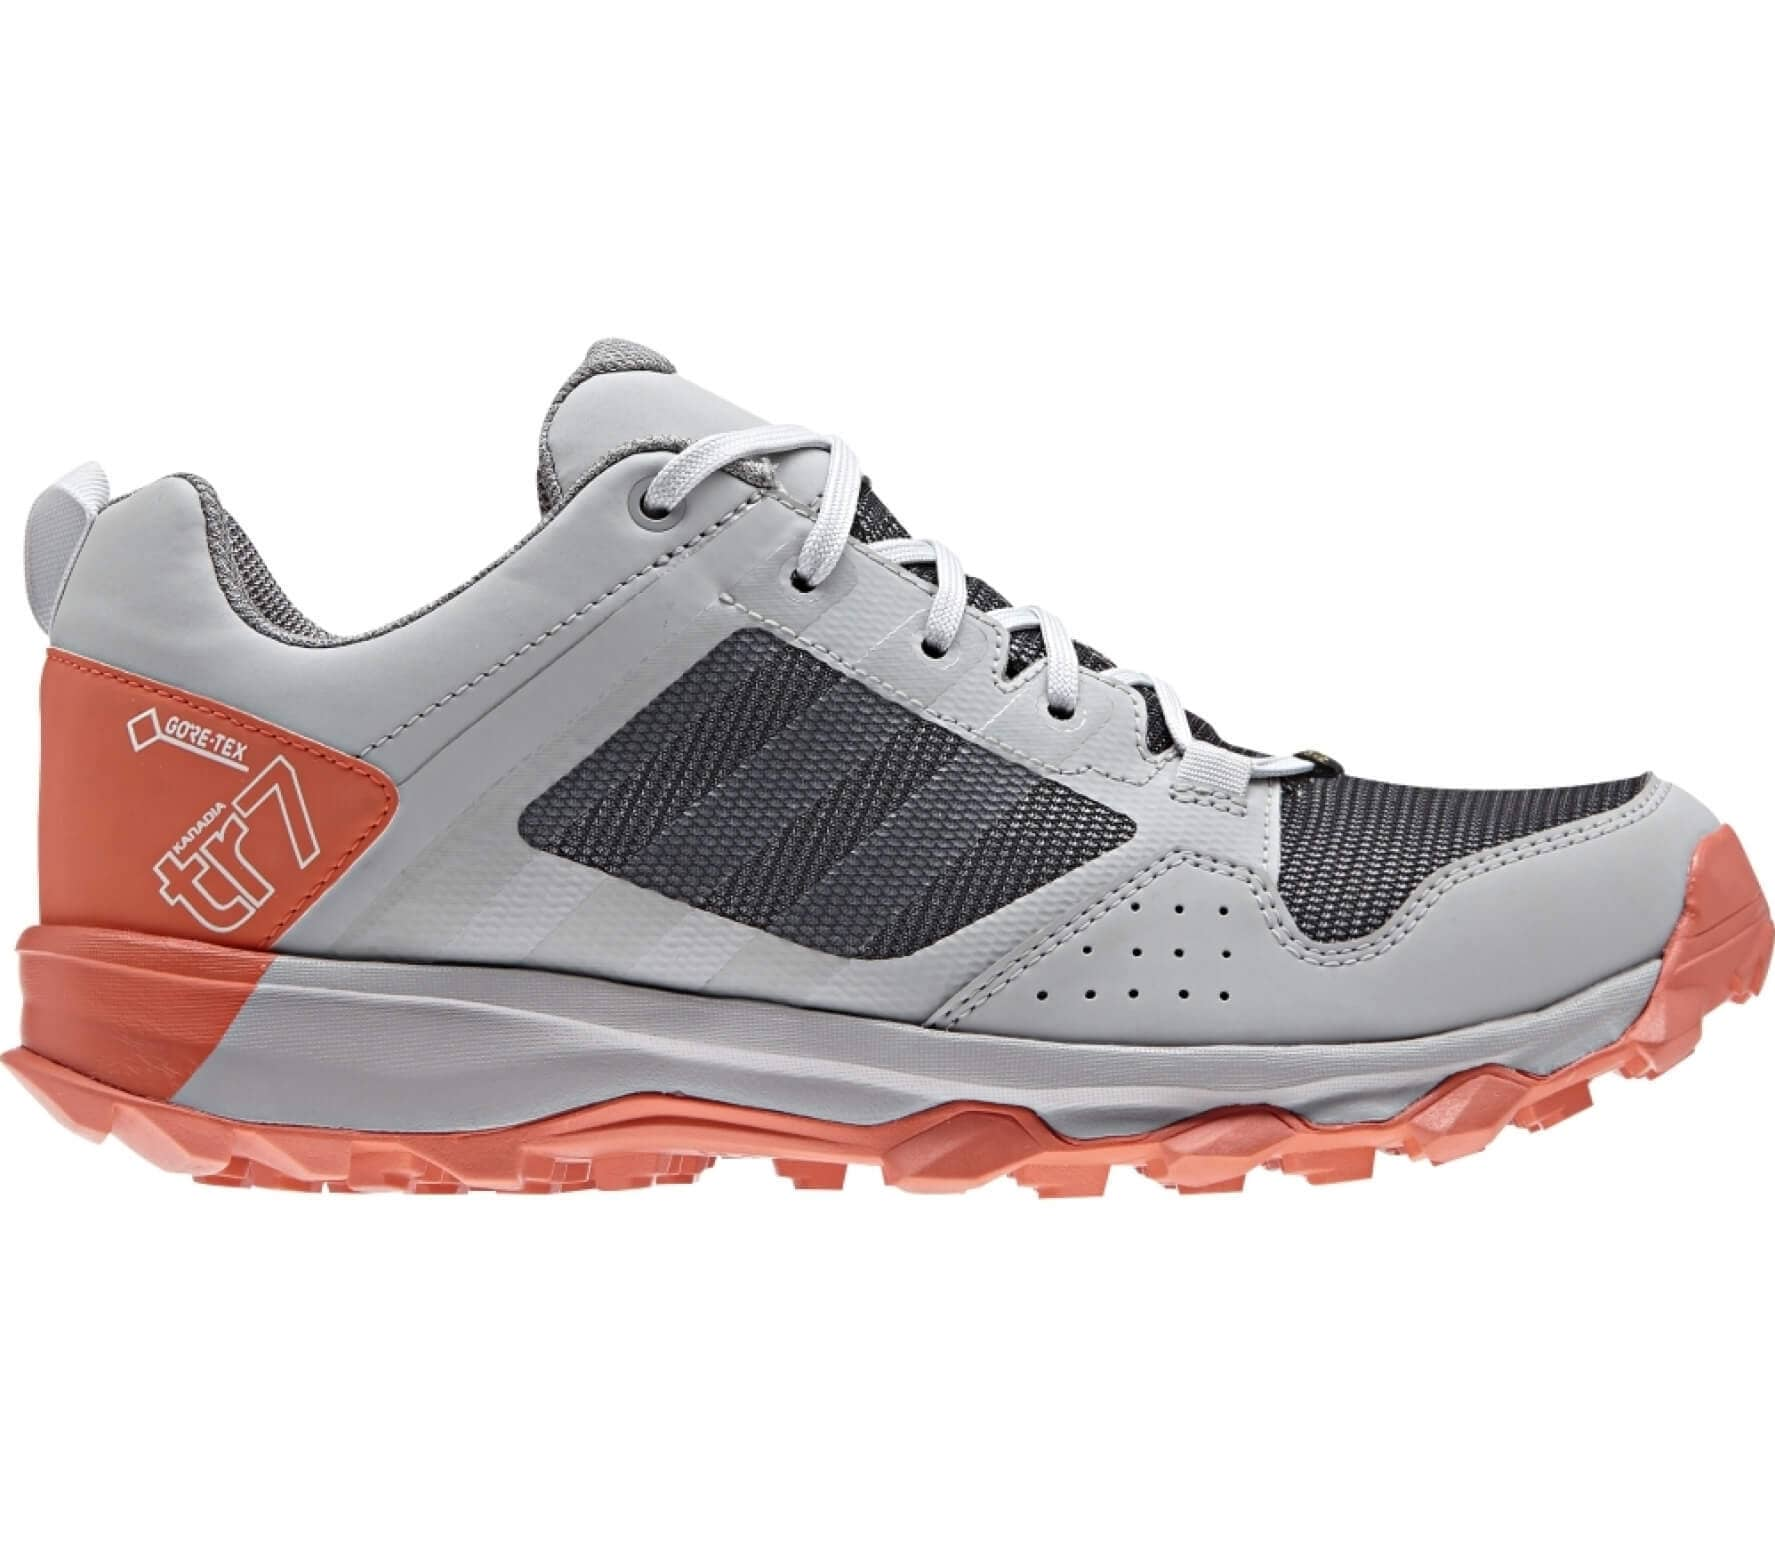 Adidas - Kanadia 7 TR GTX women s running shoes (grey orange) - buy ... d5a37ea40